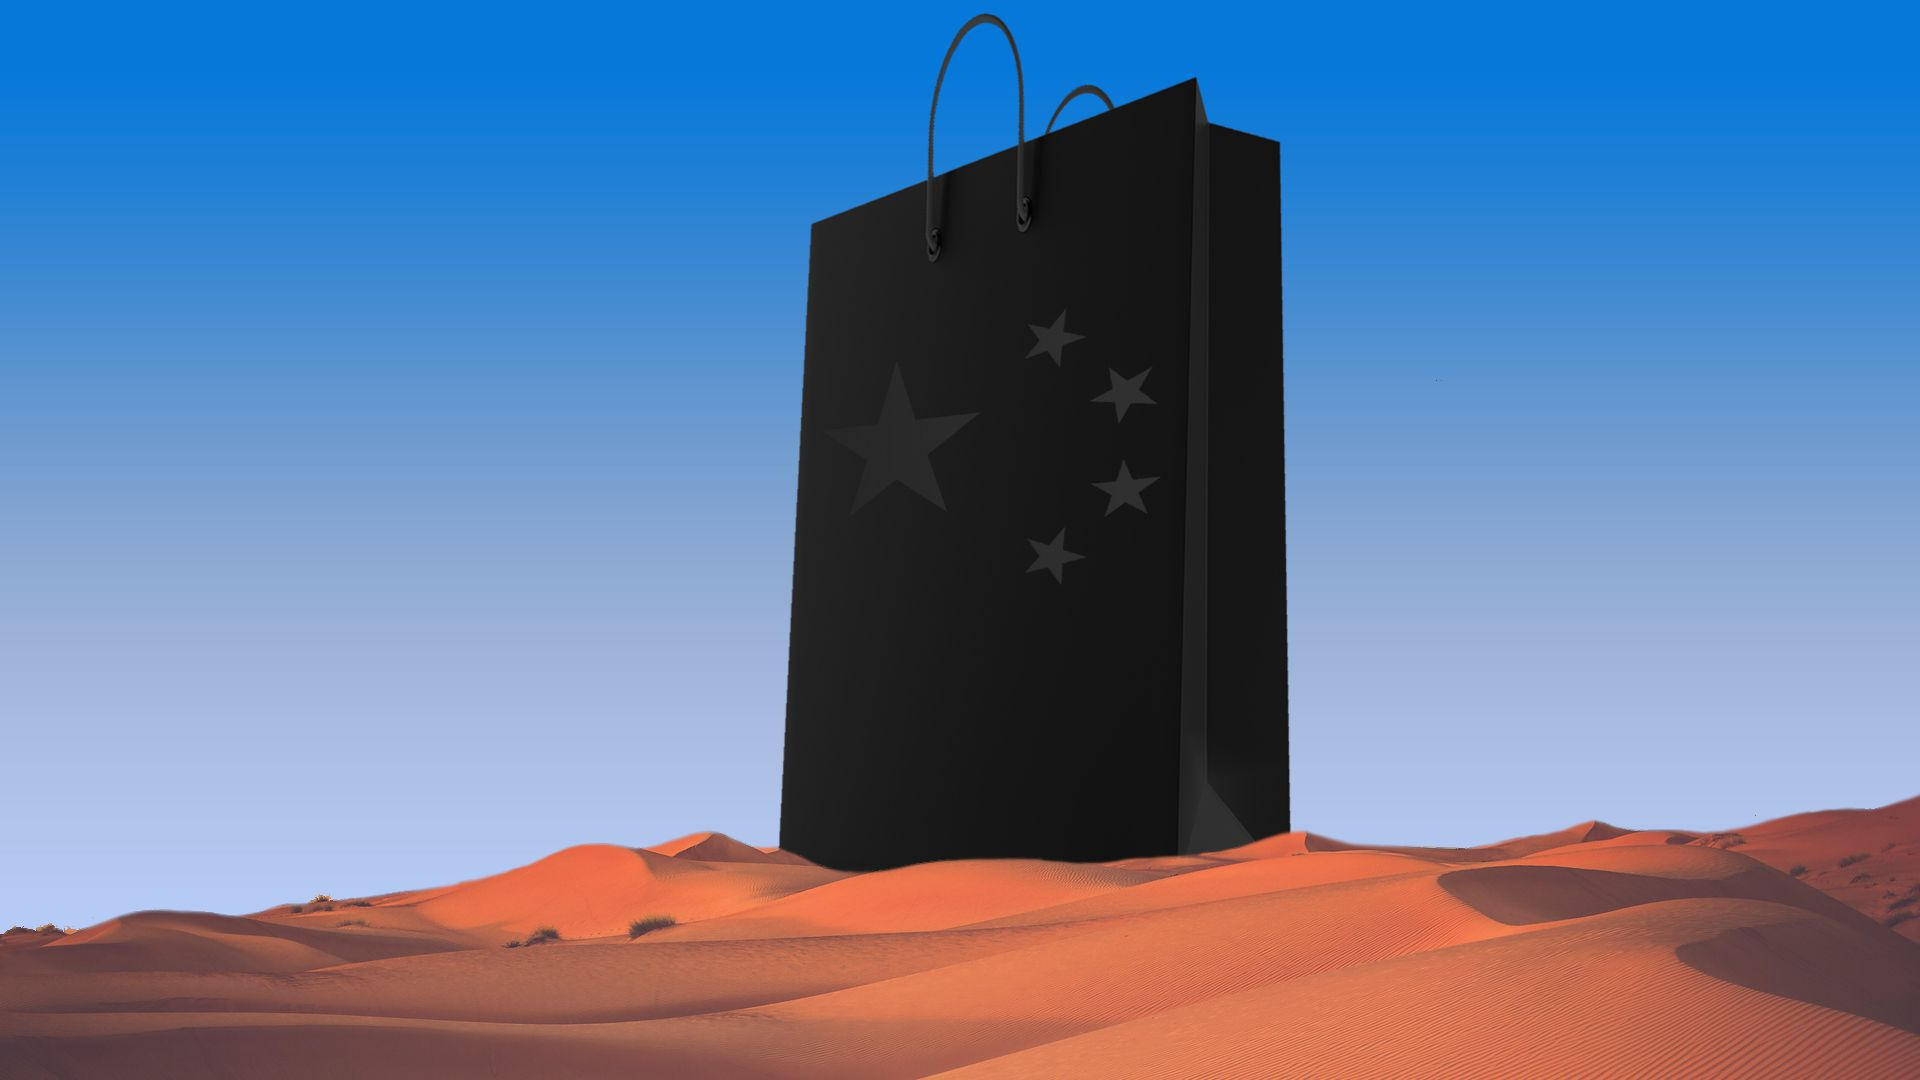 Illustration of bag with China stars